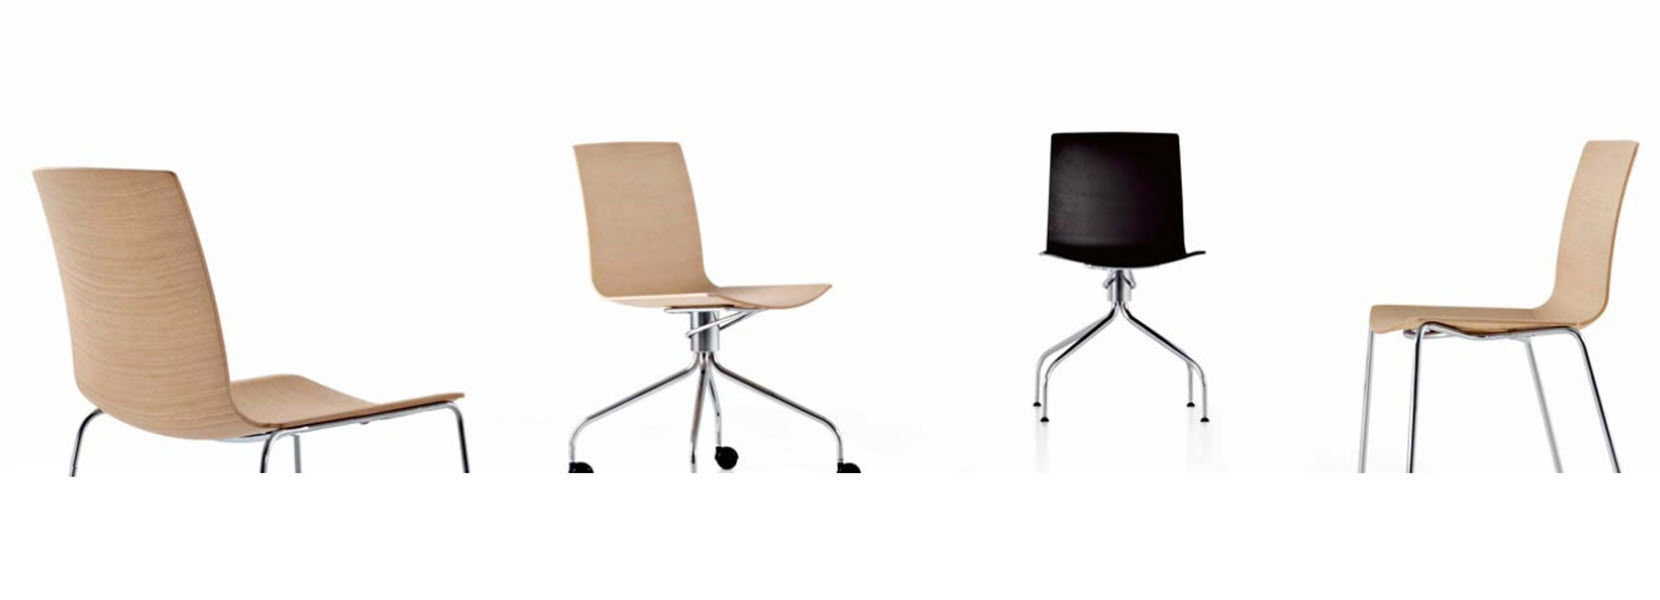 contemporary office chair / fabric / oak / molded plywood - data